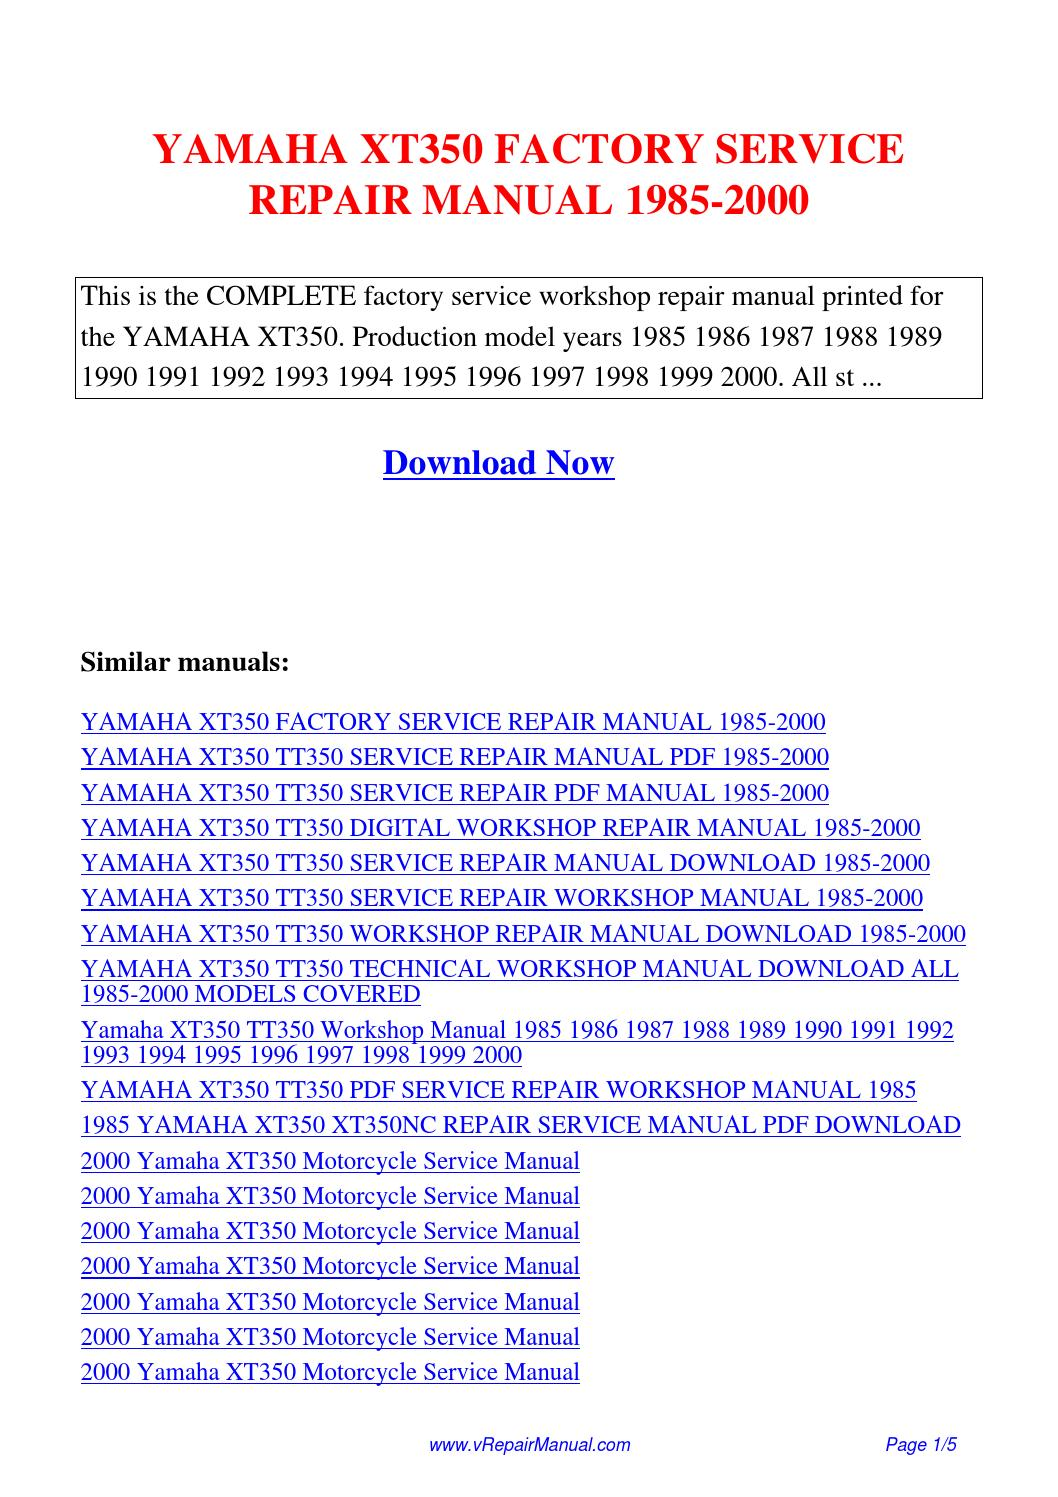 YAMAHA XT350 FACTORY SERVICE REPAIR MANUAL 1985-2000.pdf by David Zhang -  issuu